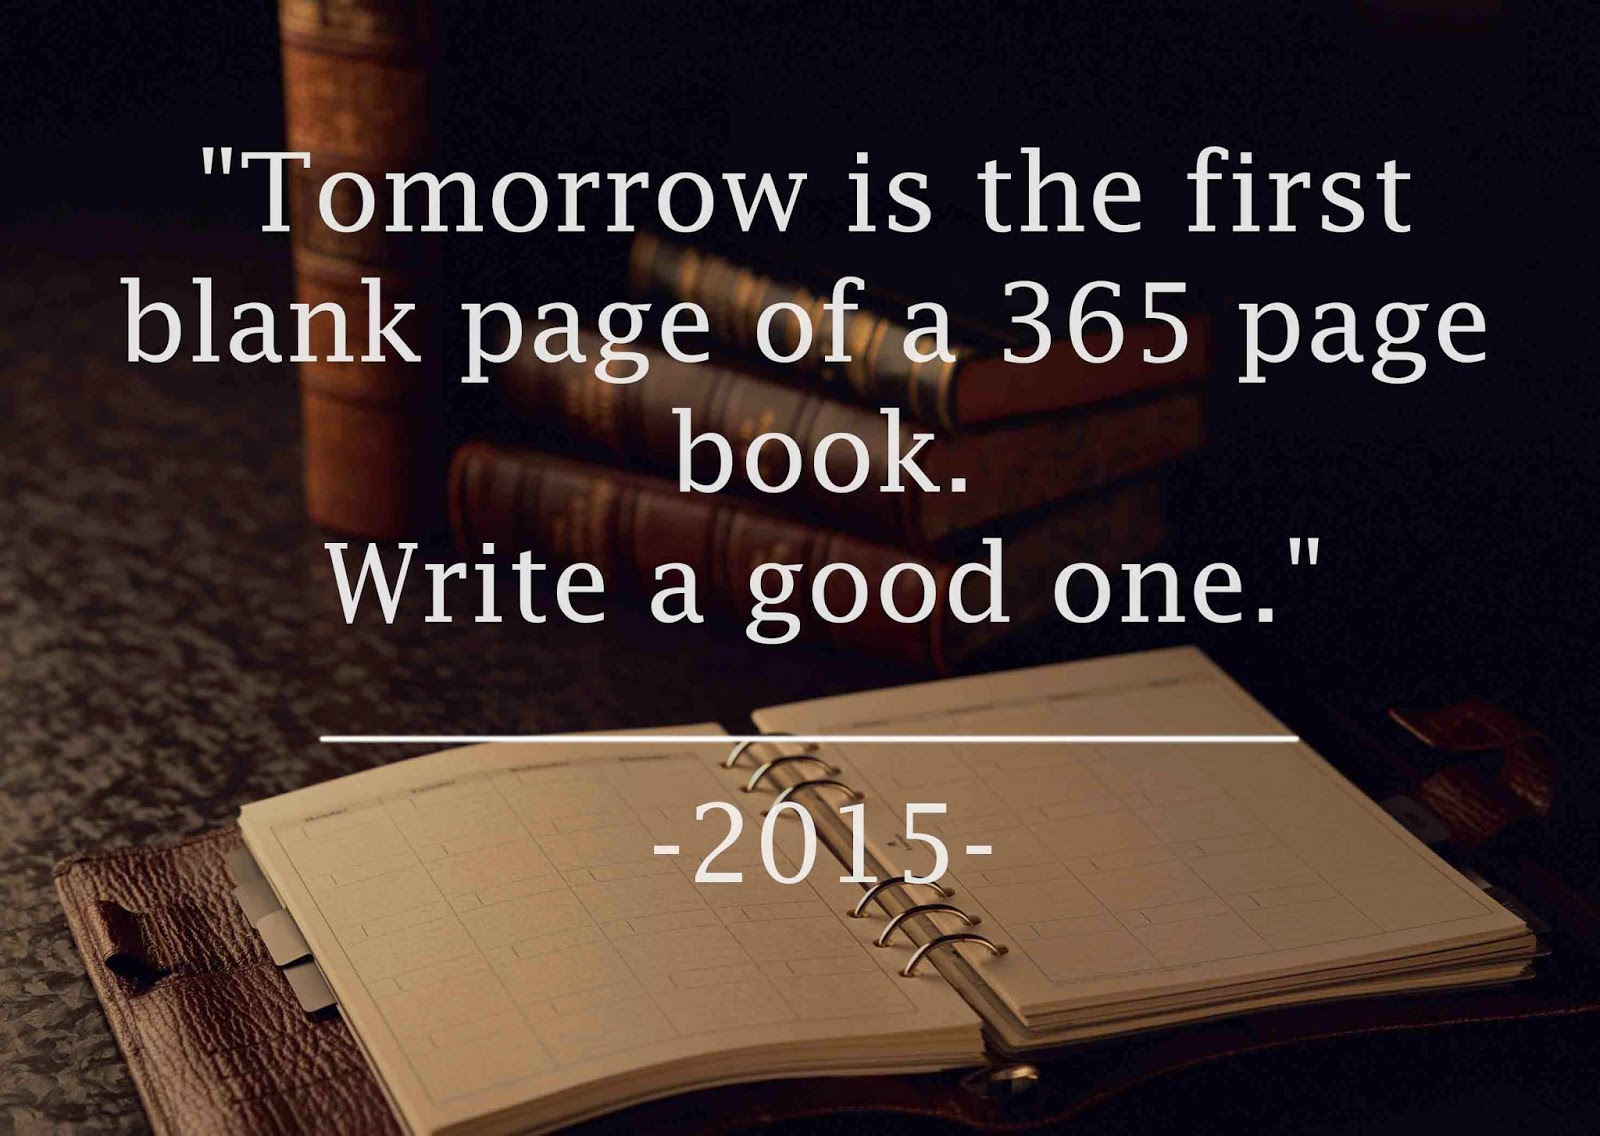 2015 new year, new chapter books, first blank page, new year's resolutions